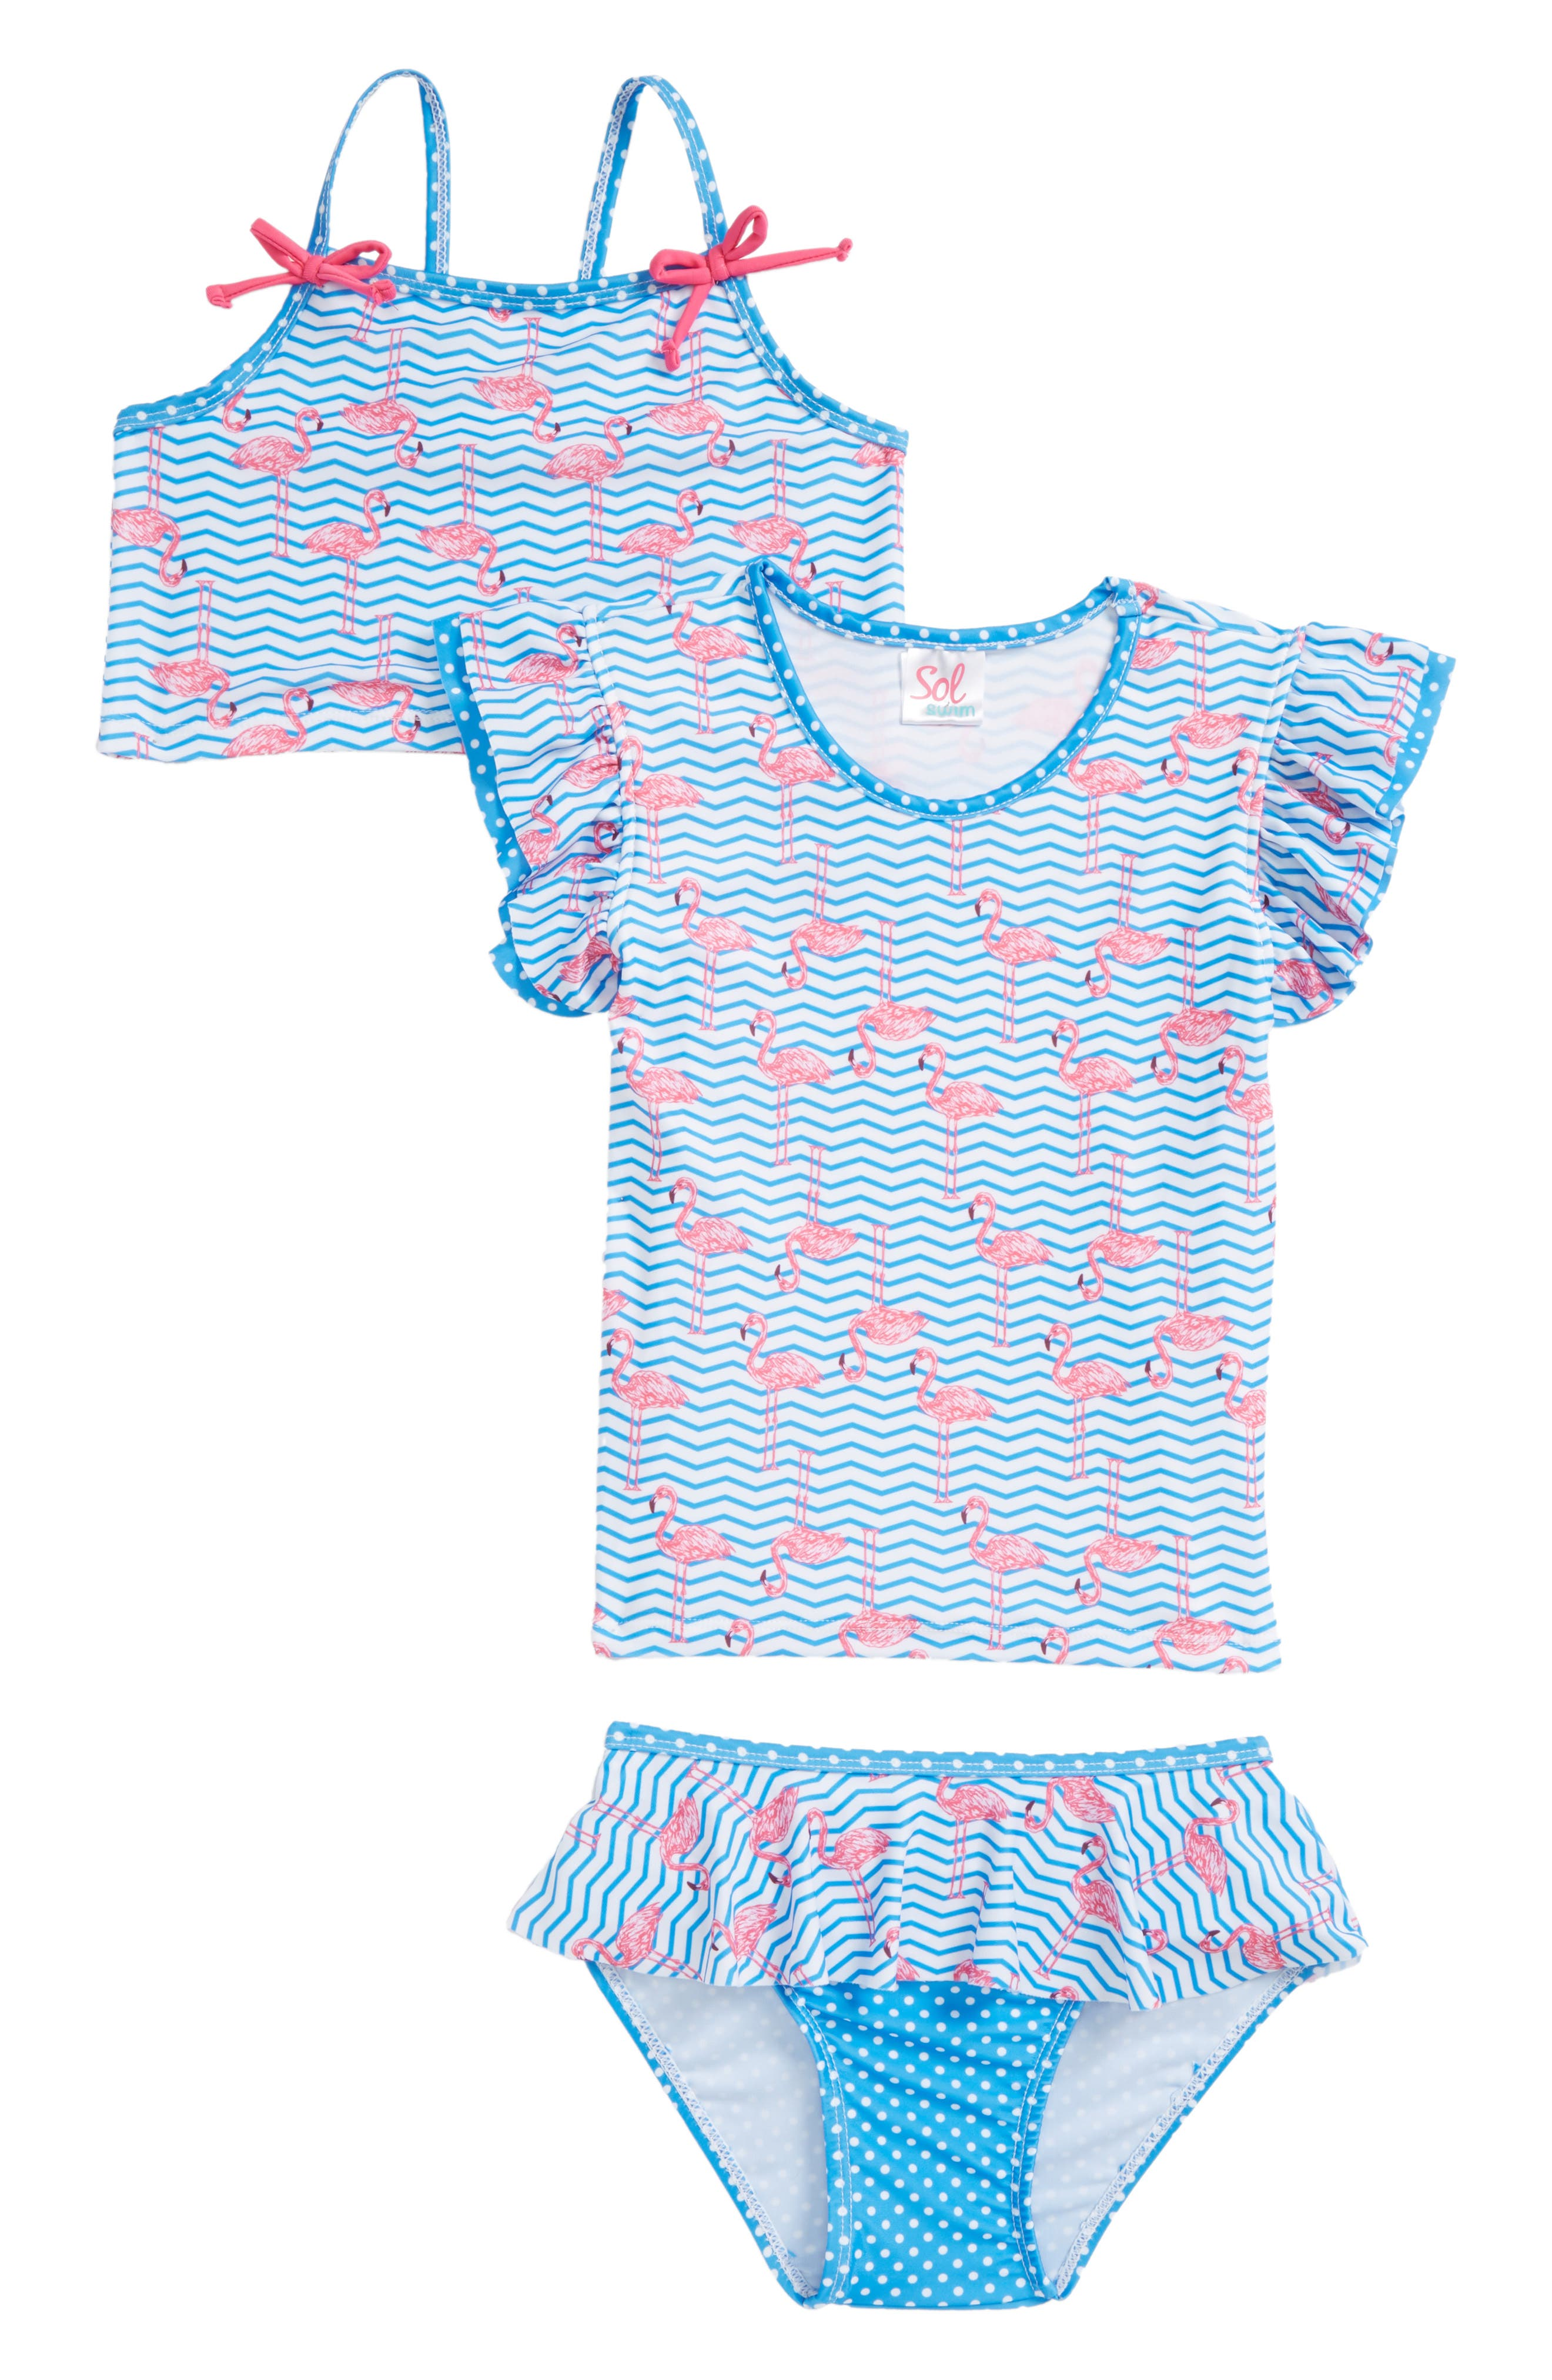 Zig Zag Flamingos Two-Piece Swimsuit with Rashguard,                         Main,                         color, 409